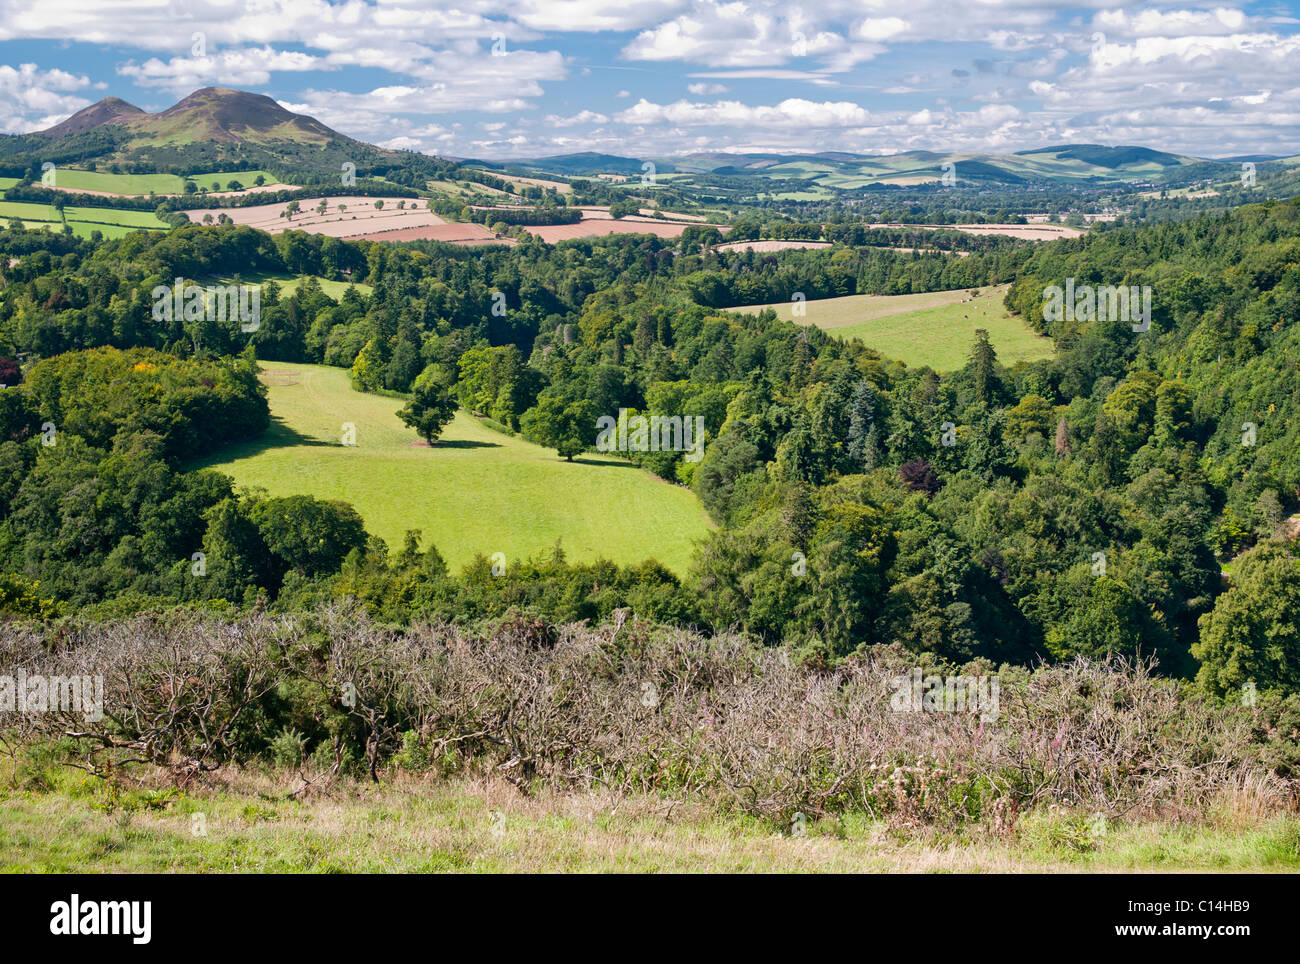 SIR WALTER SCOTT'S VIEW MELROSE SCOTLAND UNITED KINGDOM - Stock Image